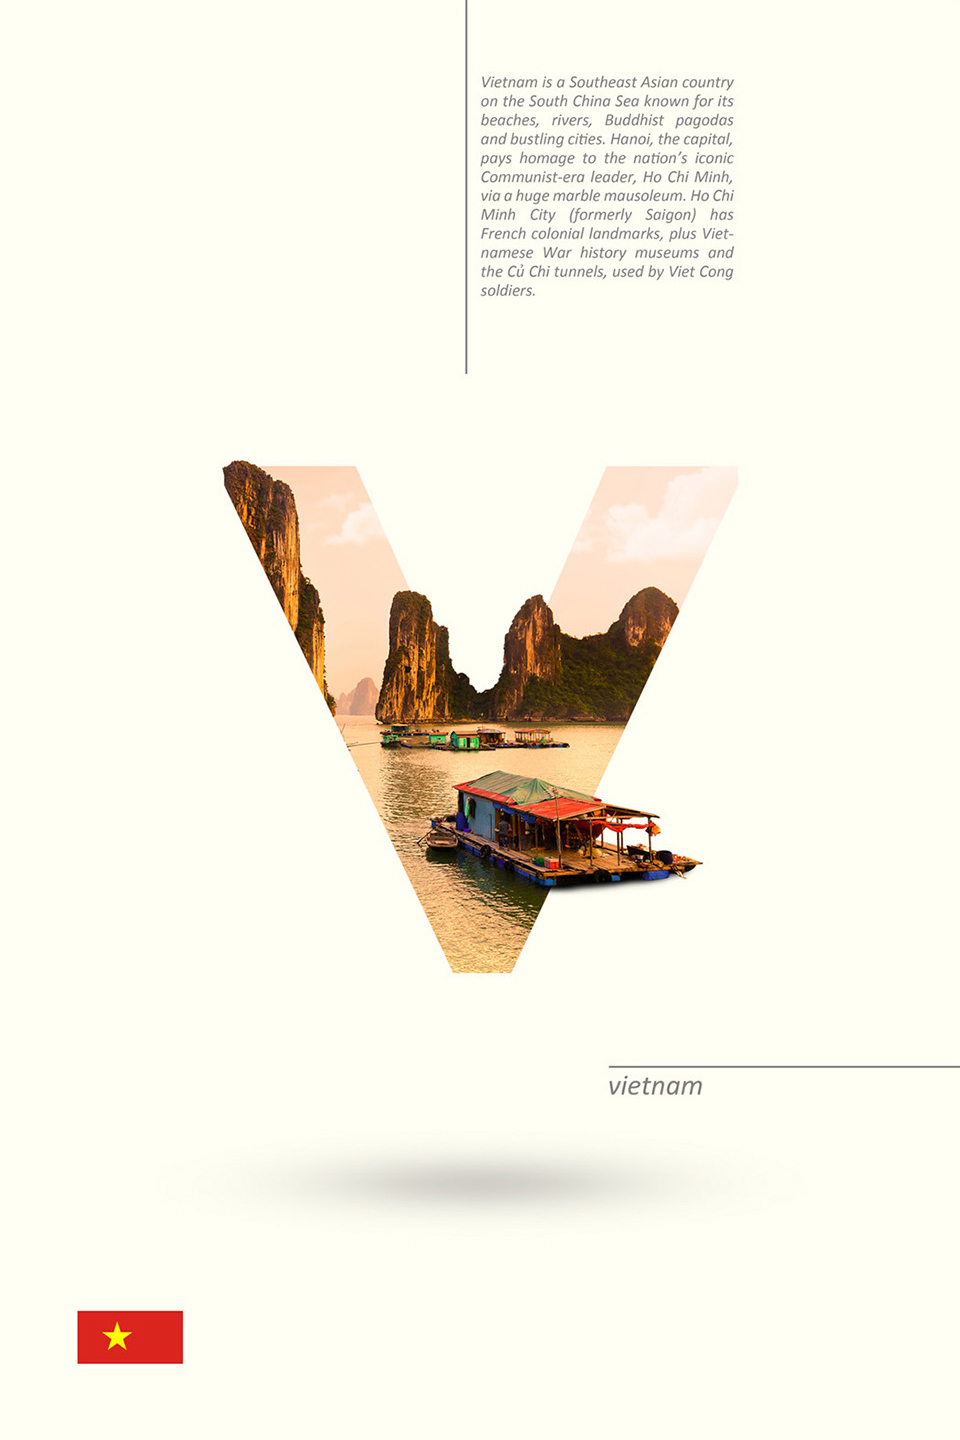 Beautiful Alphabet Series Of Countries And Their Iconic Landmarks - Vietnam